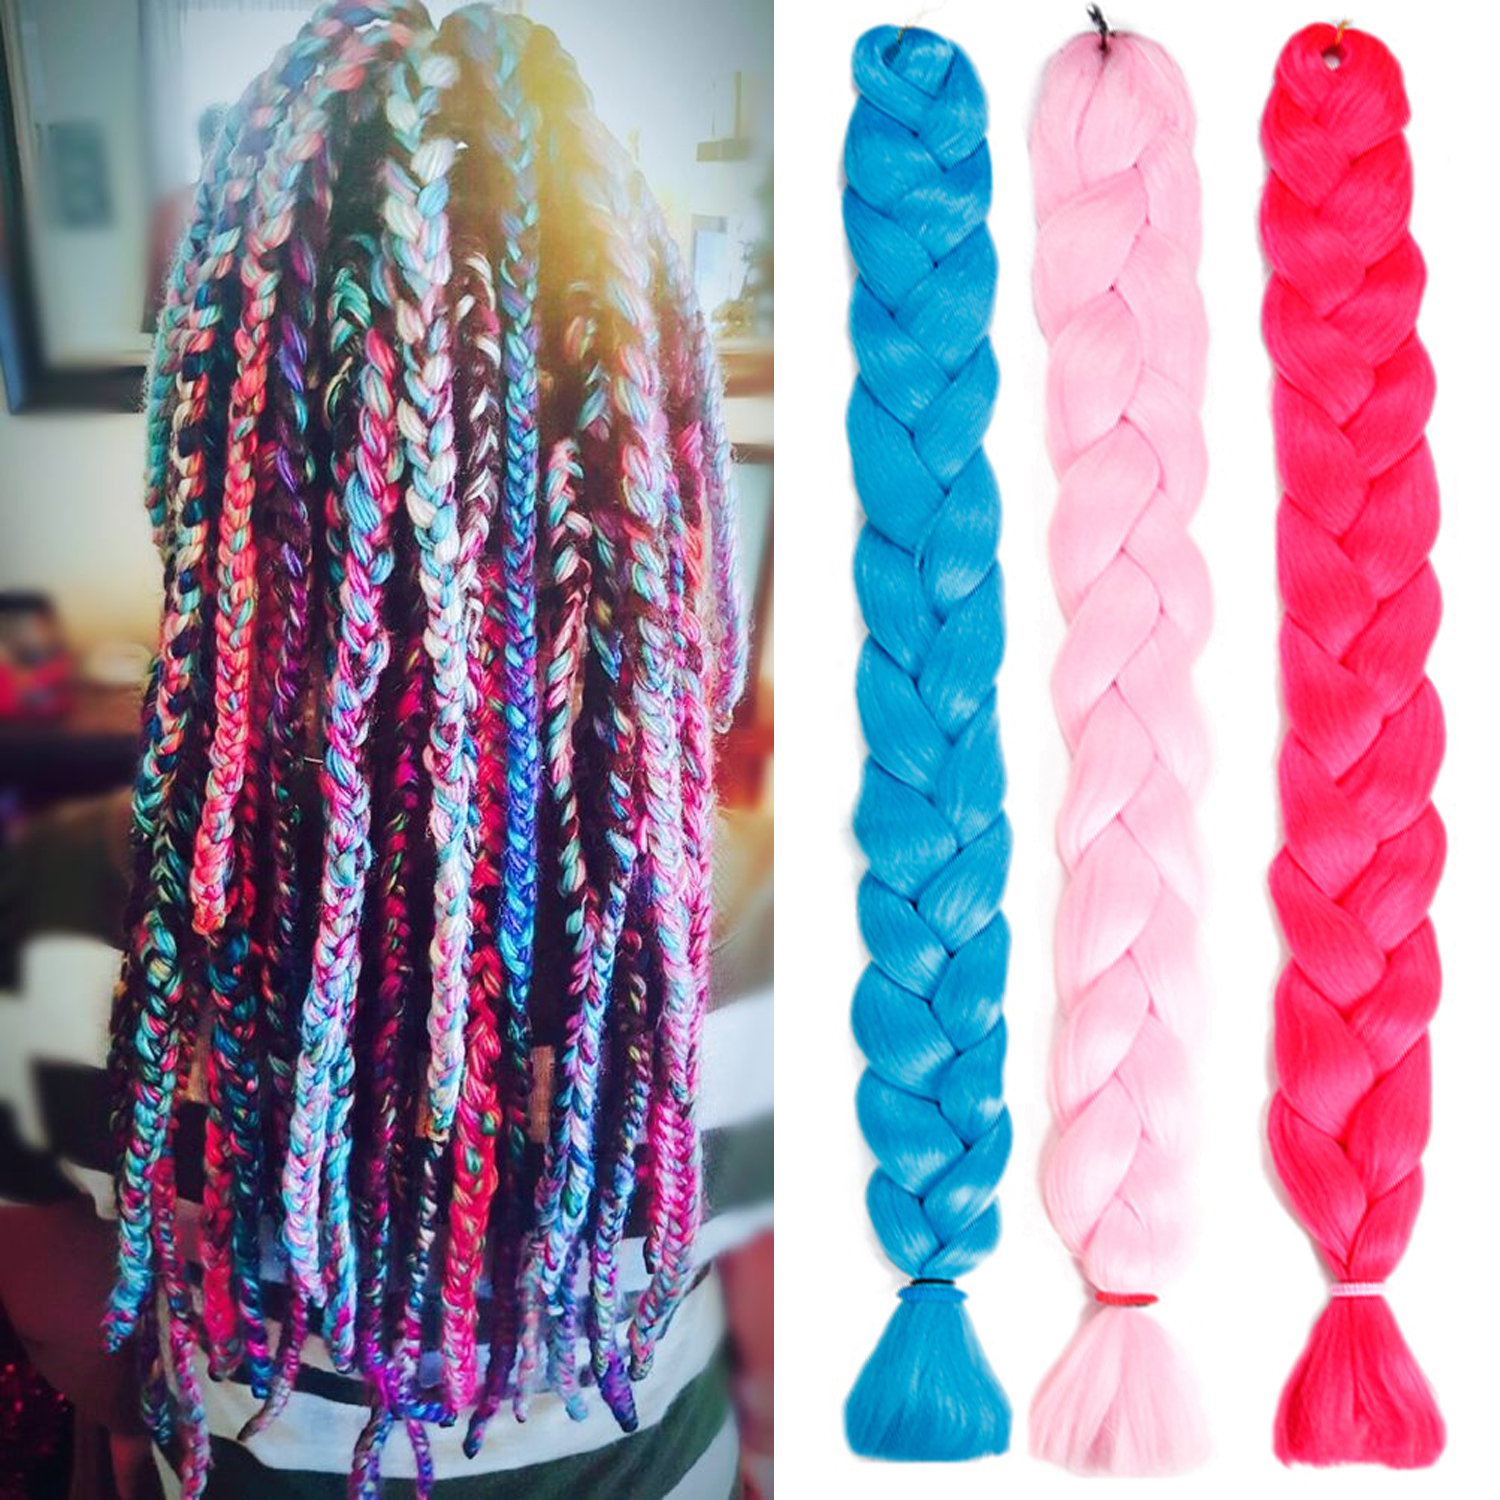 Synthetic Braiding Hair Extension 82inches 165 Grams Long Jumbo Braid Crochet Hair Ombre Kanekalon Braids